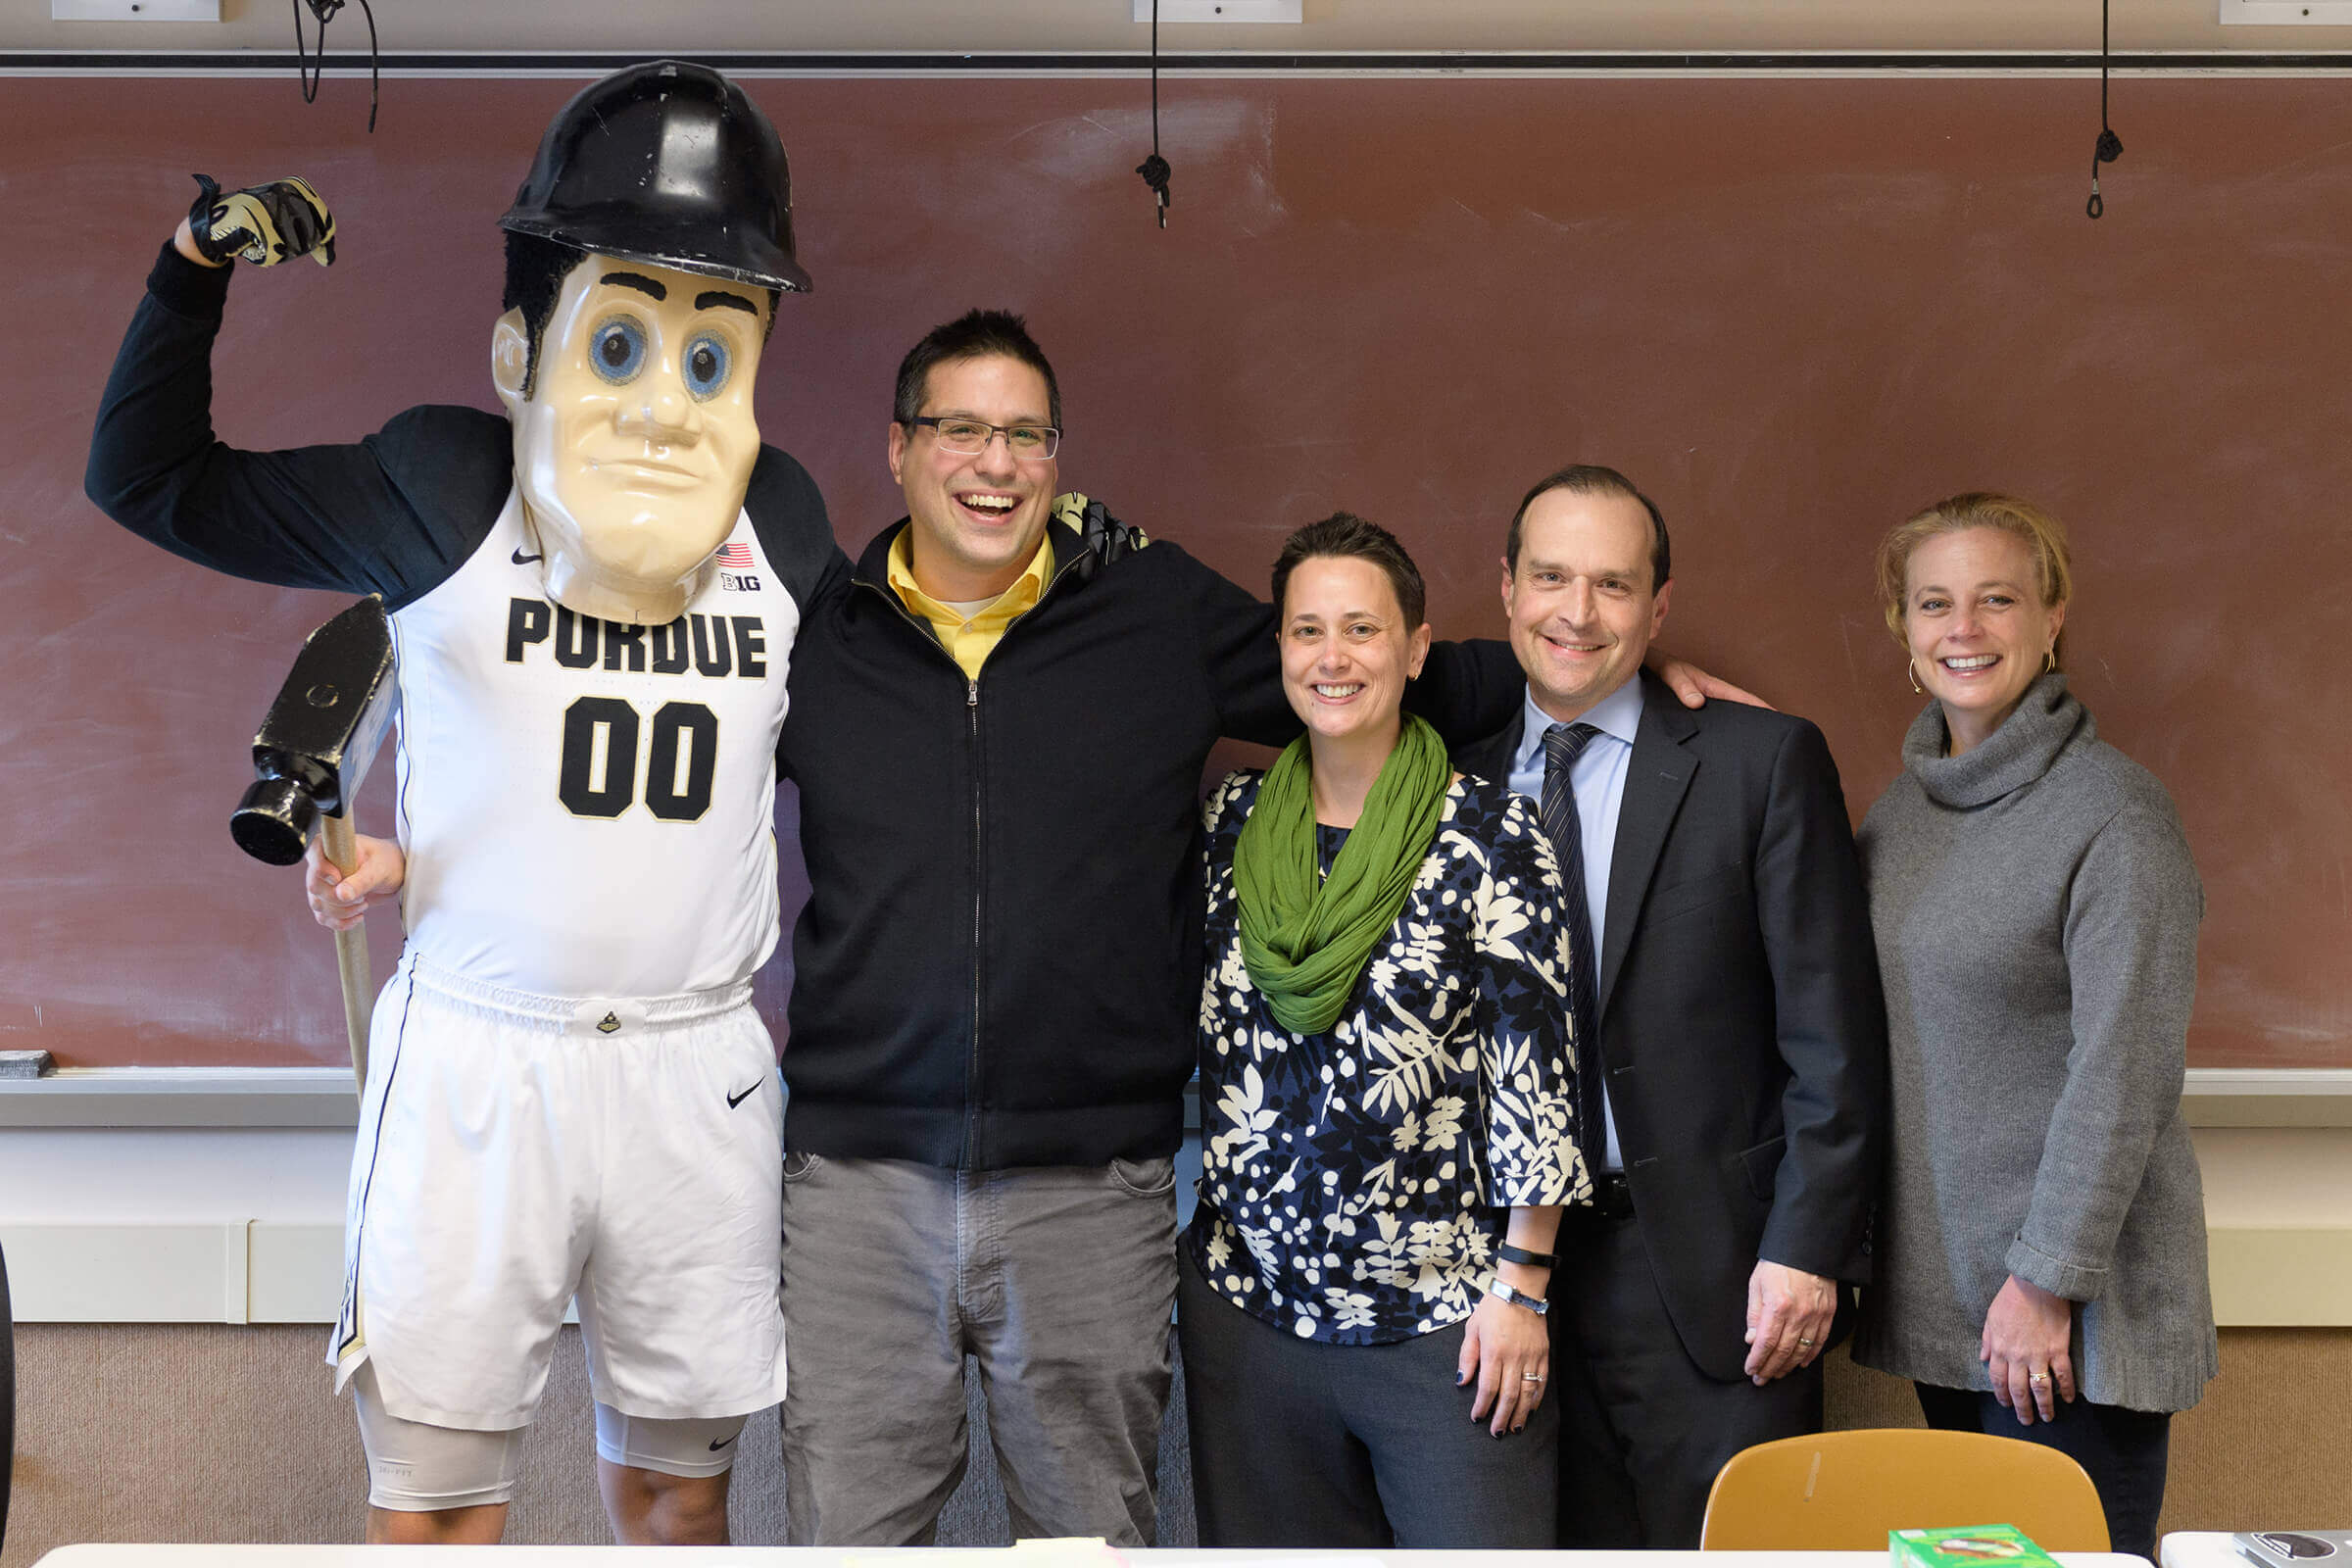 Purdue Pete; Derek Pacheco, Nush Powell, David Reingold, Dorsey Armstrong